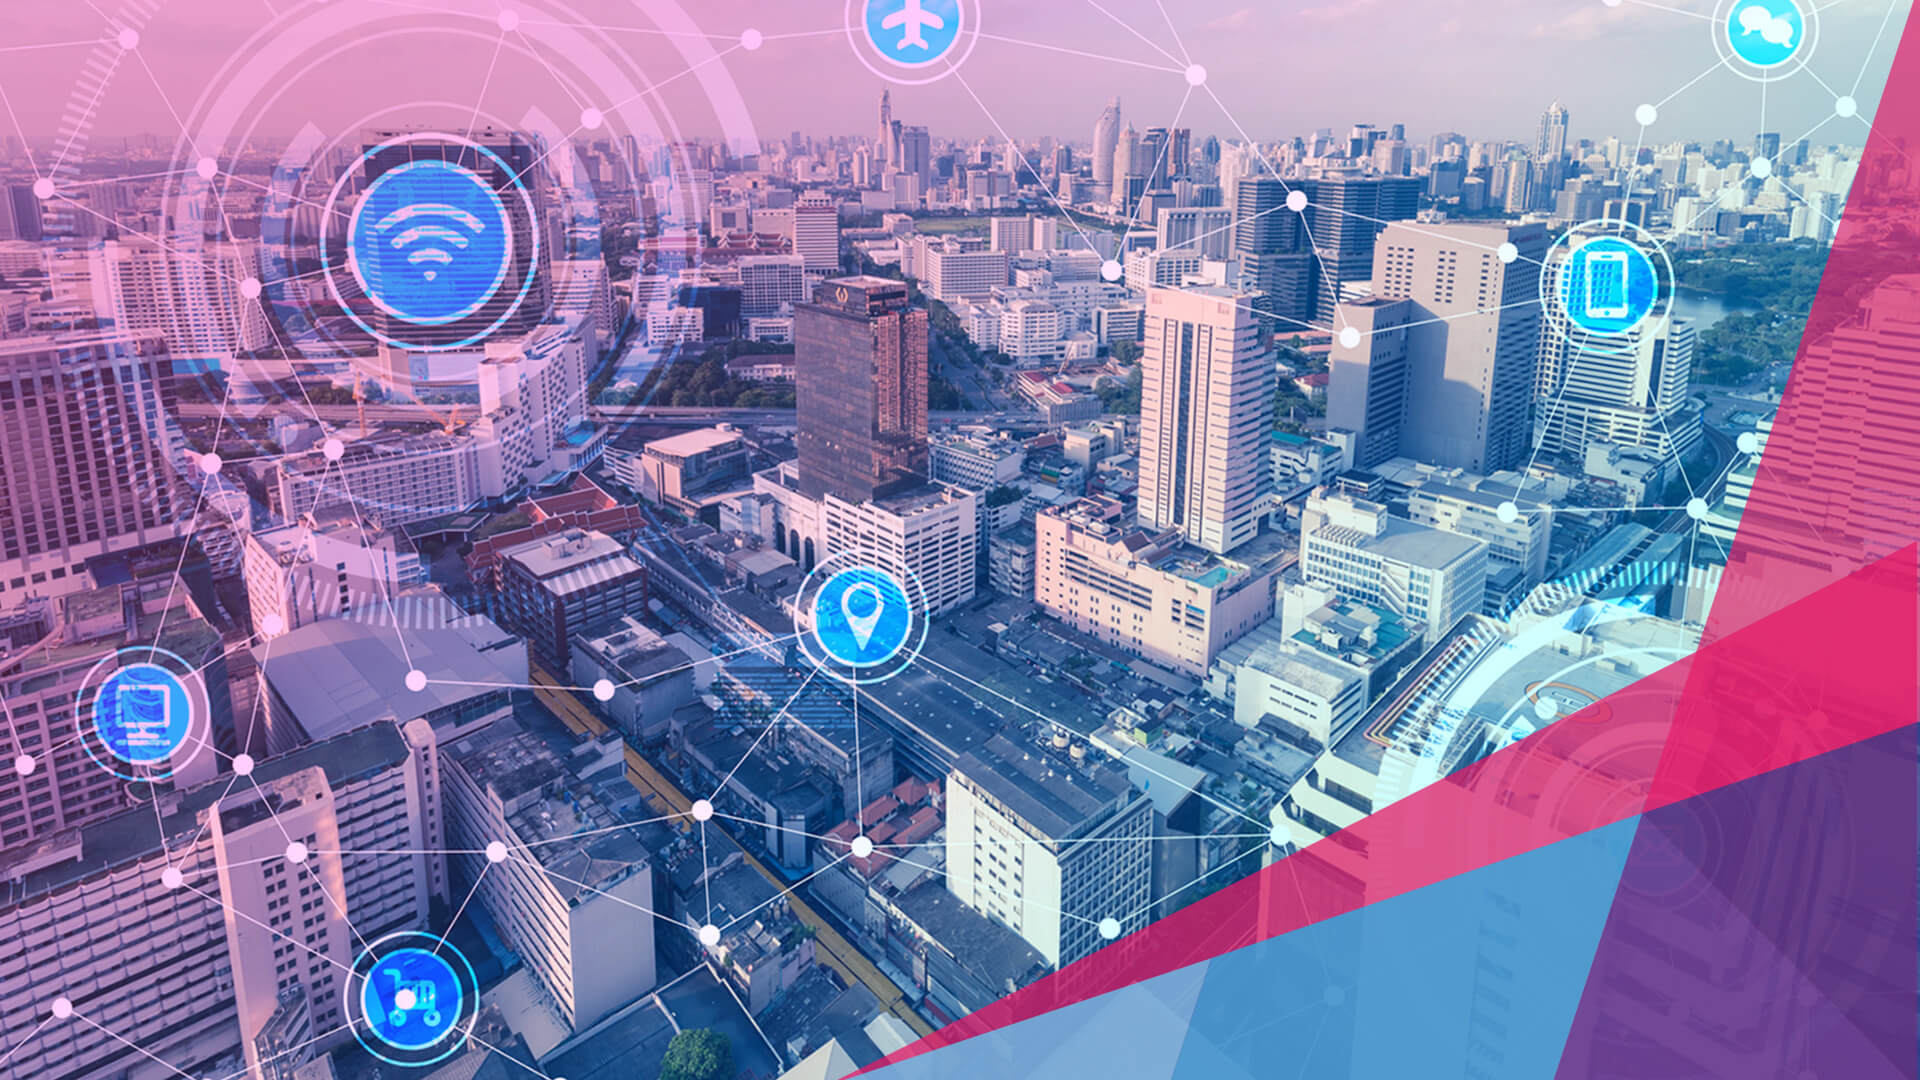 Apps that are based on IOT are going to rule the next decade